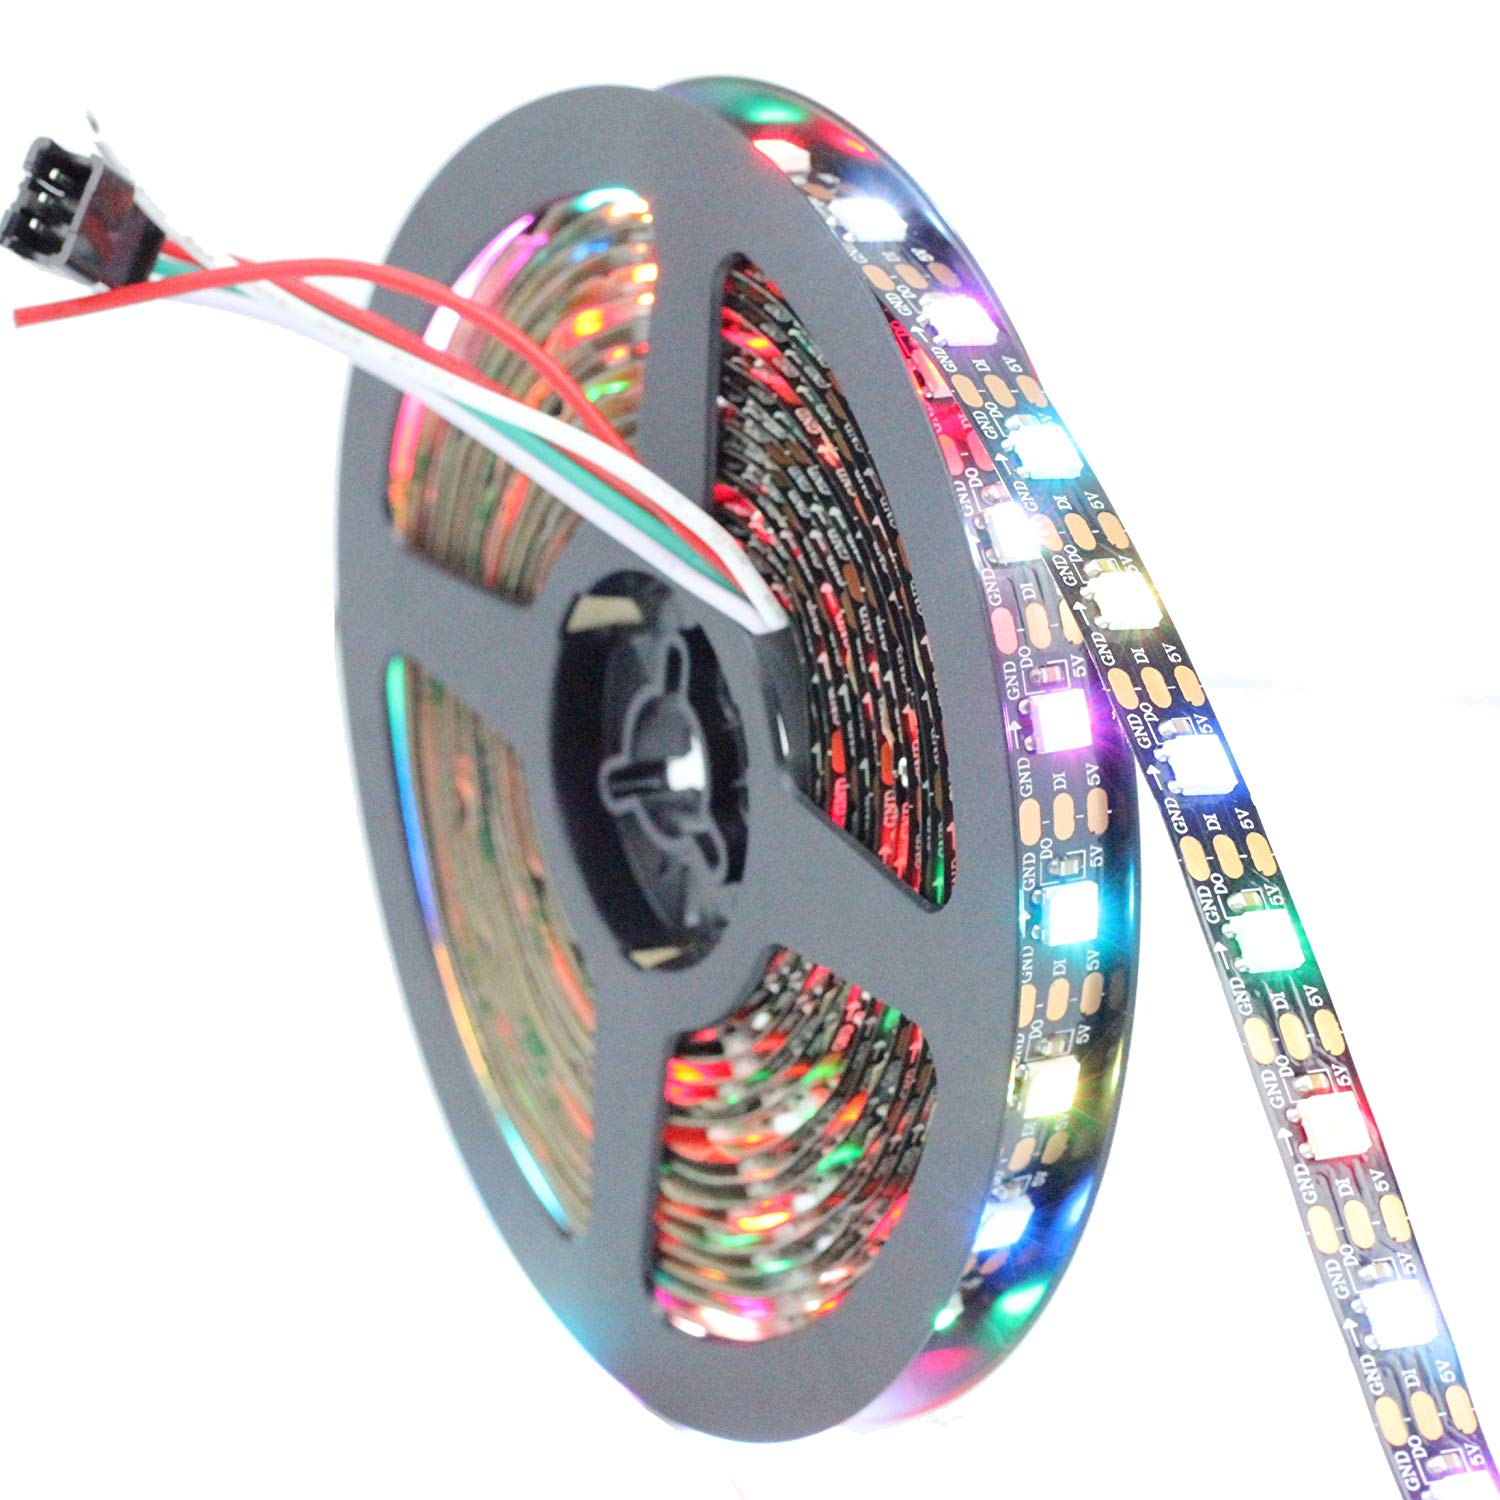 INVOLT 16.4FT 300 Pixels WS2812B Programmable Addressable LED Strip Light Black PCB 5050 RGB Dream Color Flex LED Rope Light DC5V Not Waterproof W/Connector & Sticker